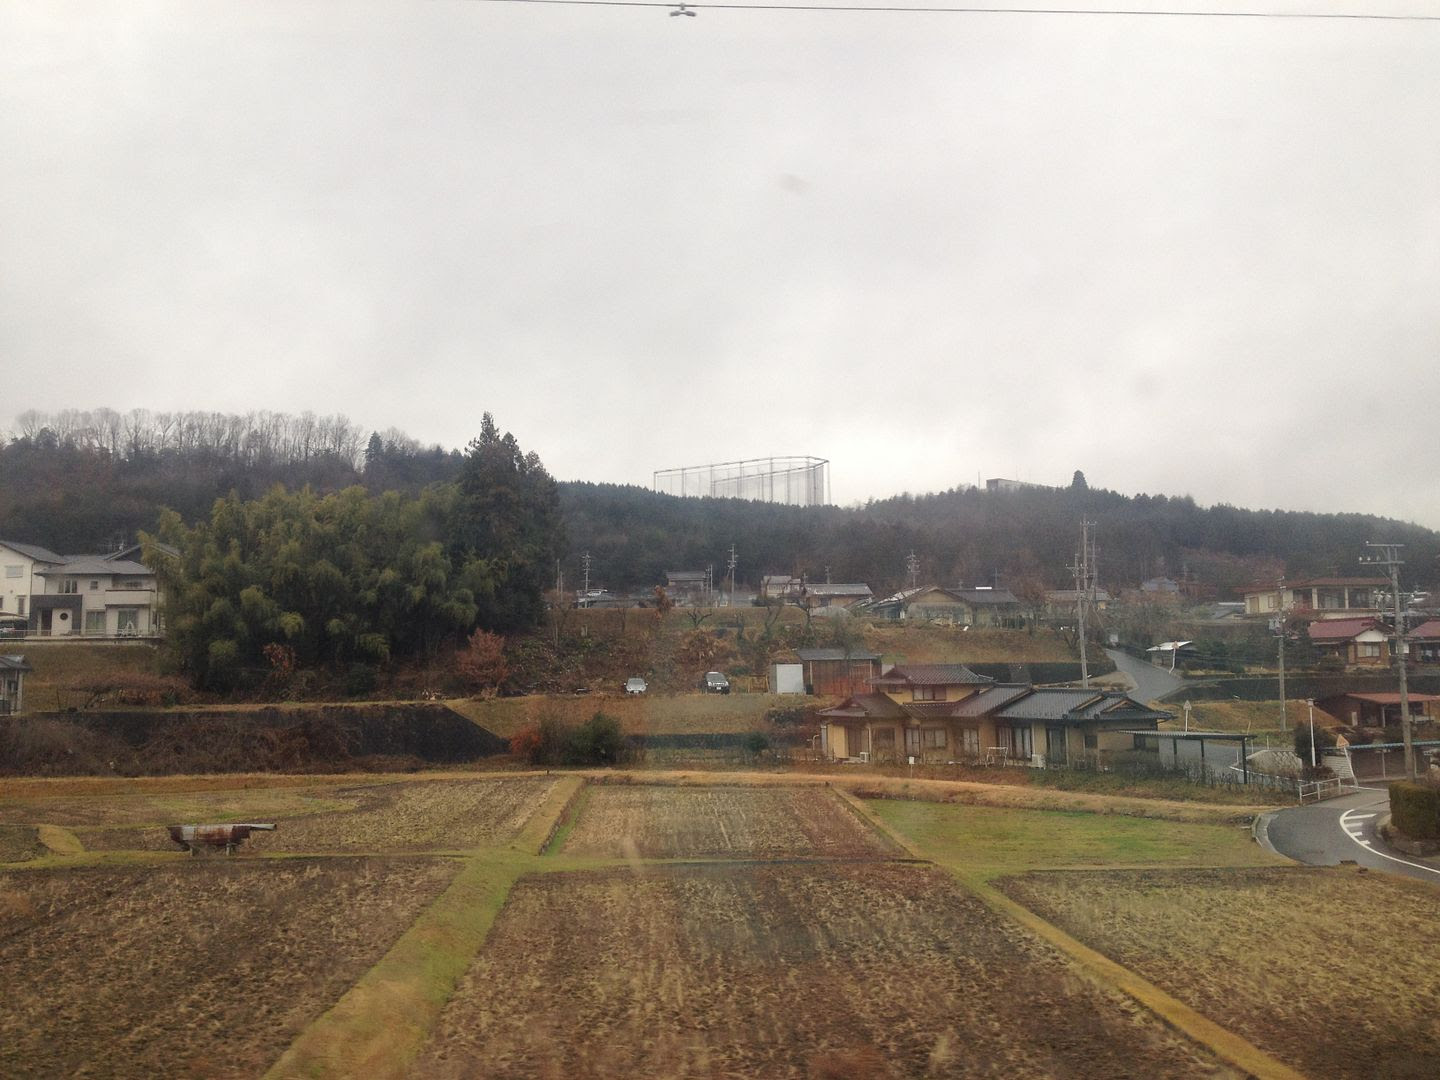 Train to Kyoto photo 2013-12-21111301_zps9759fbe2.jpg